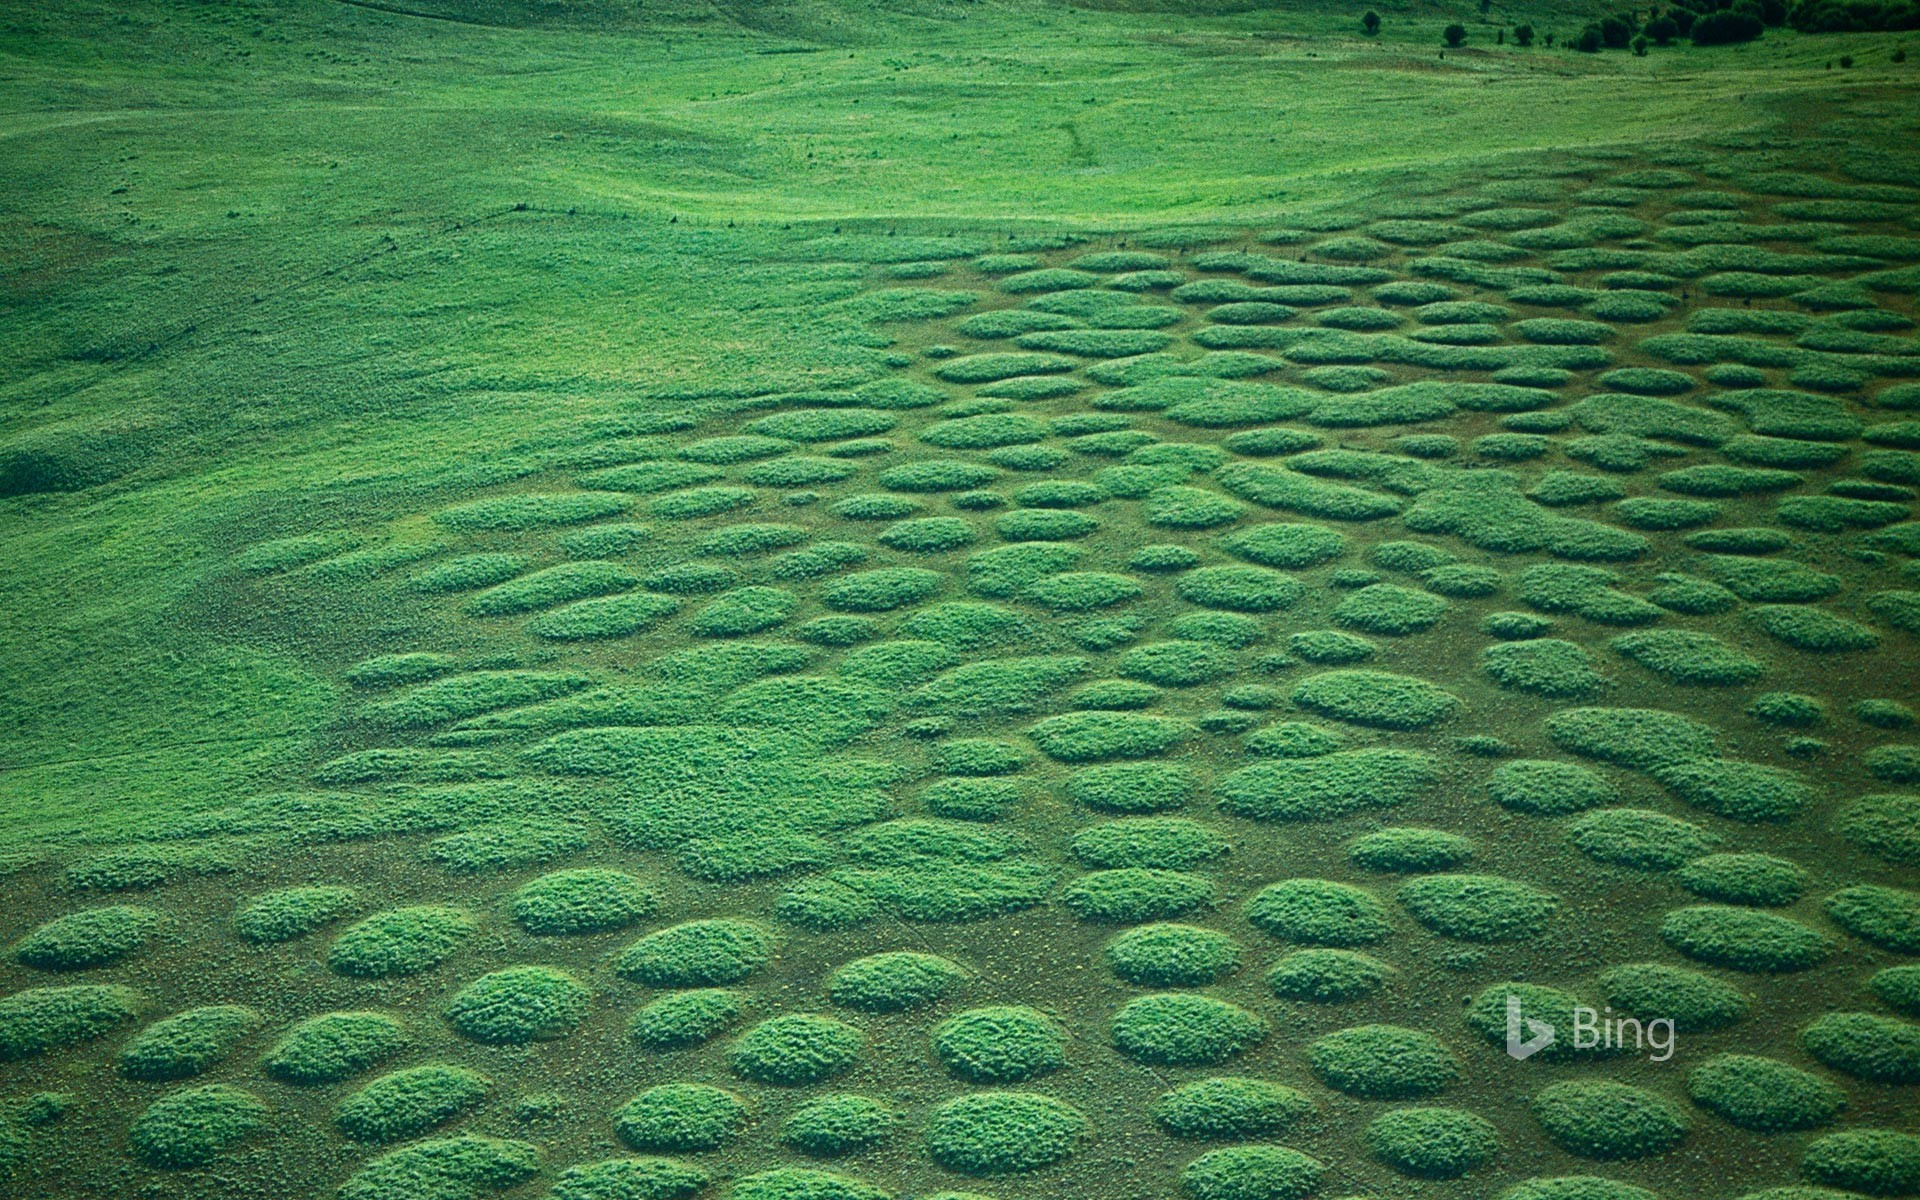 Mima mounds at Oregon's Zumwalt Prairie, USA